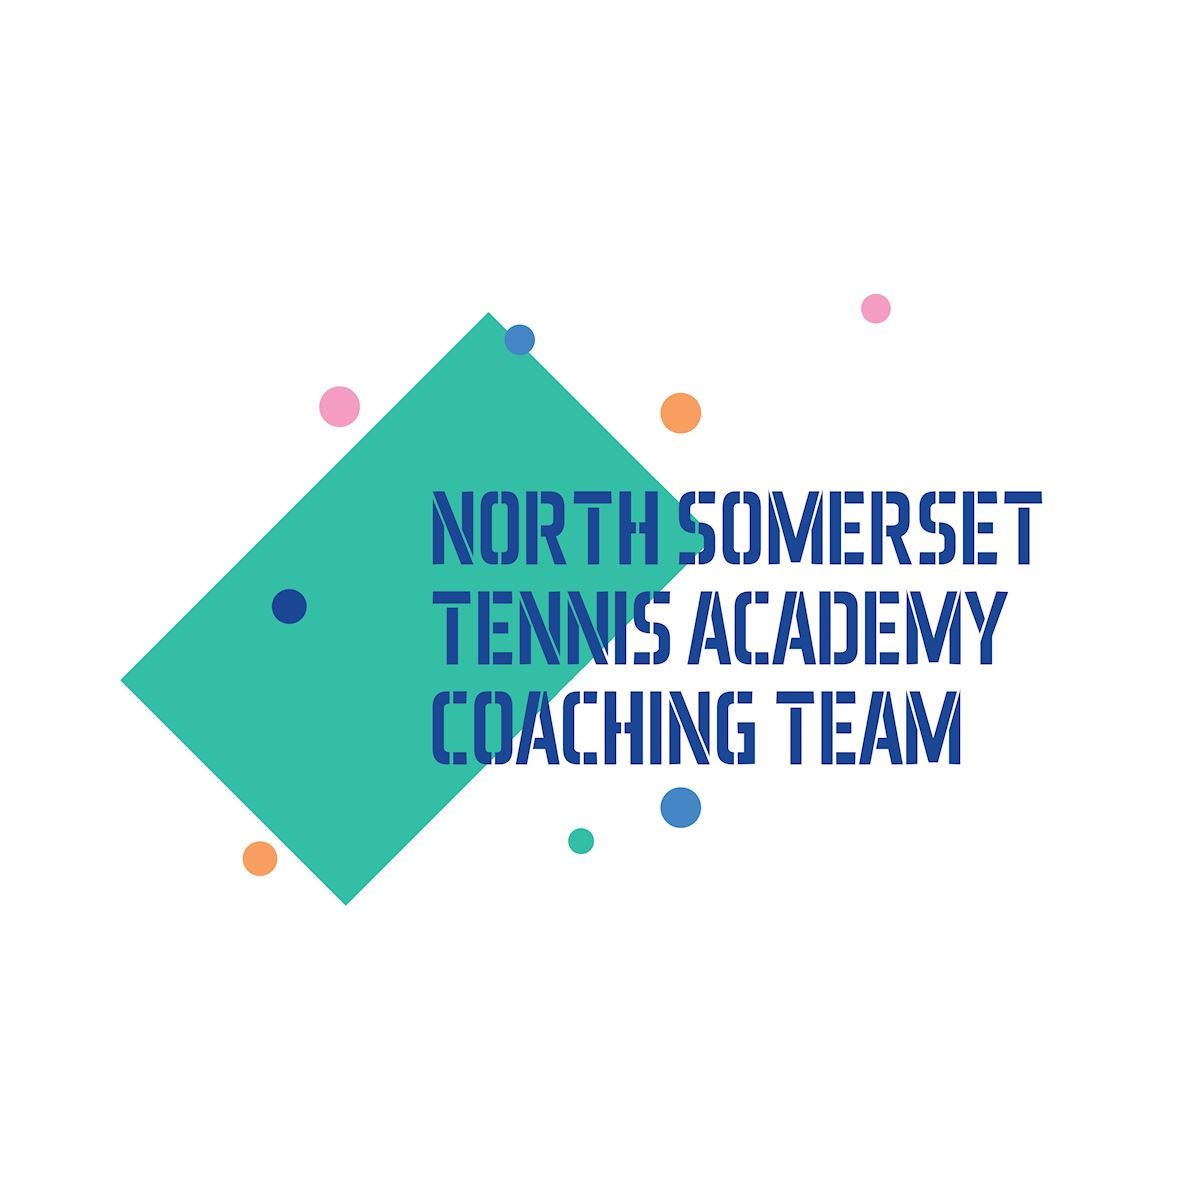 North Somerset Tennis Academy